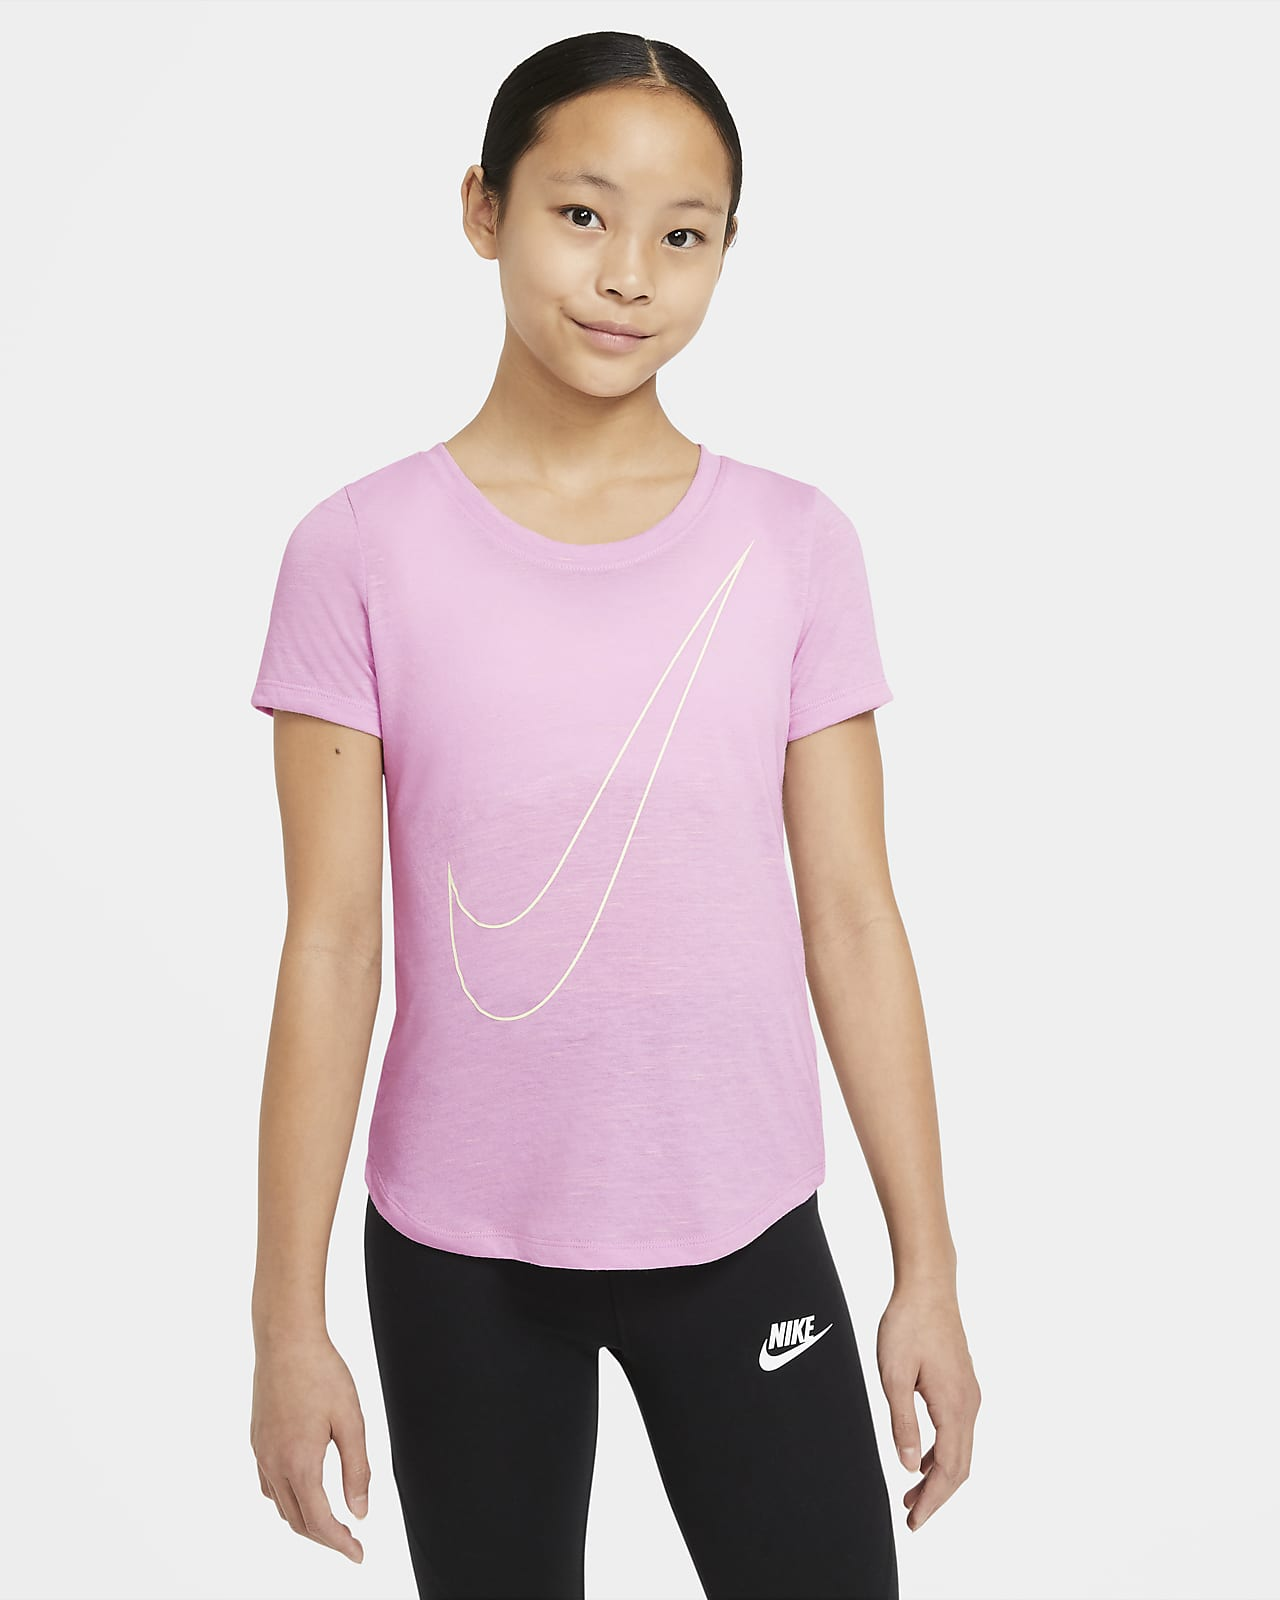 Nike Dri-FIT Big Kids' (Girls') T-Shirt